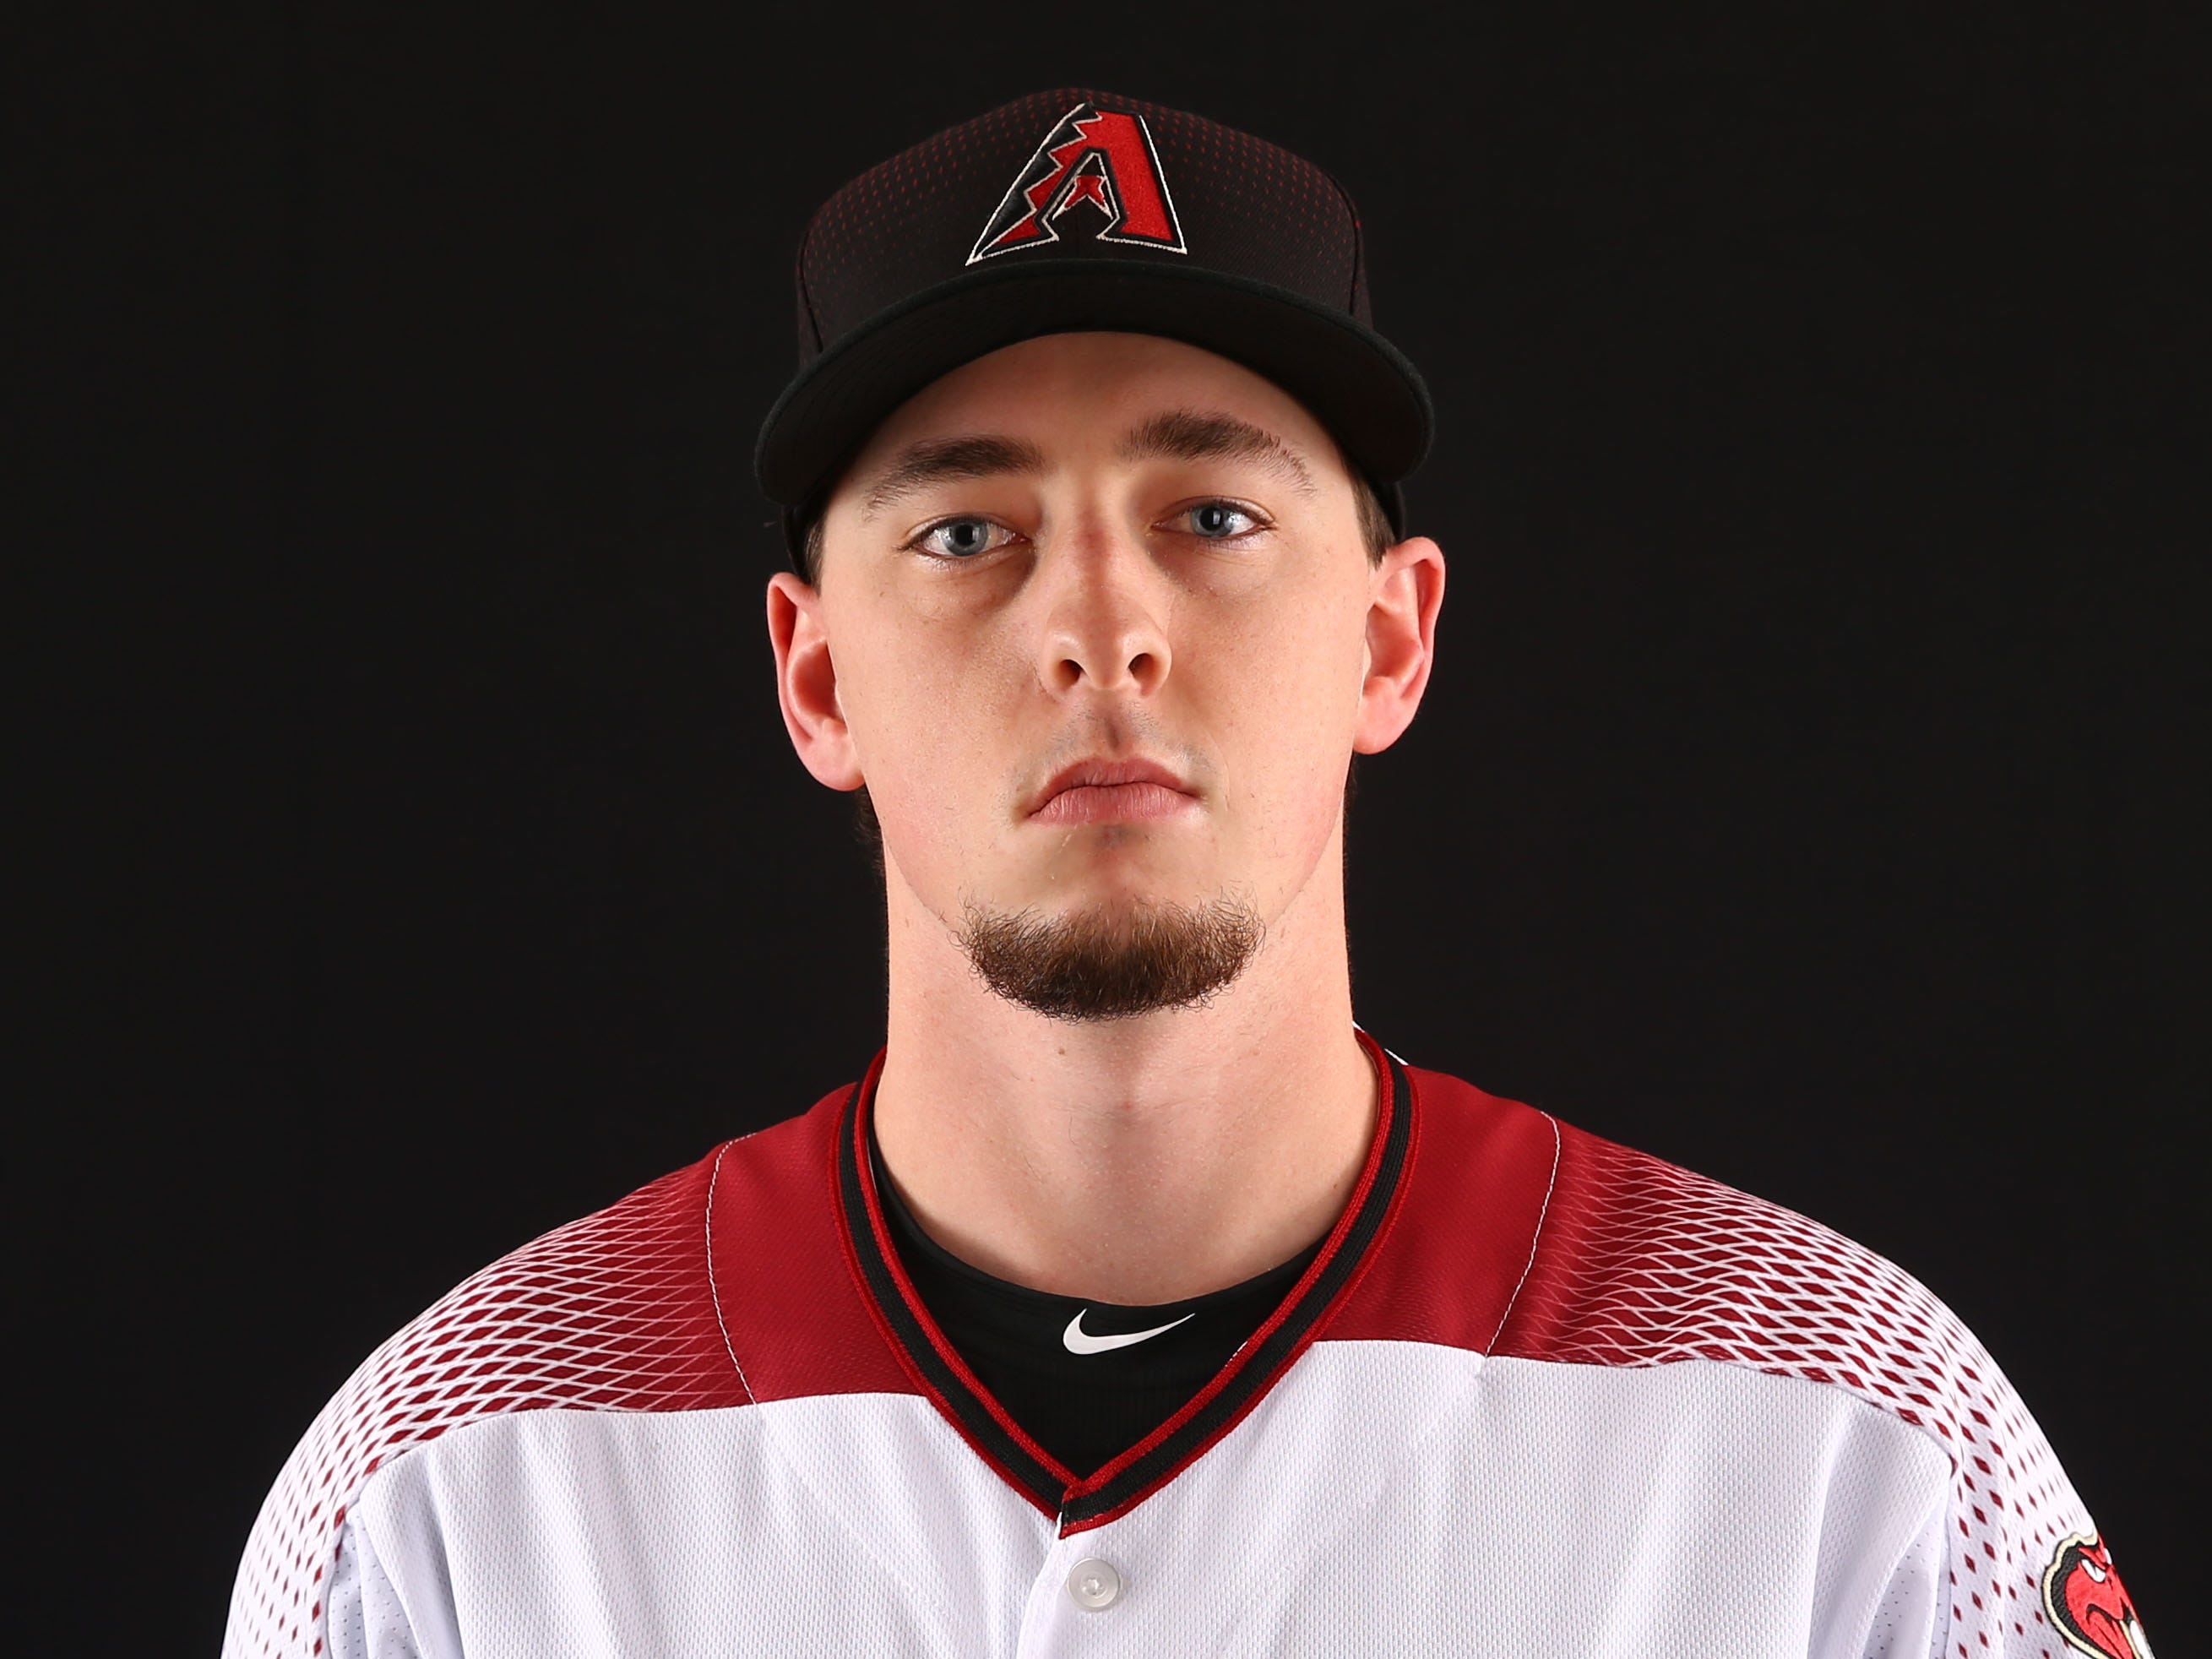 Taylor Clarke of the Arizona Diamondbacks poses for a photo during the annual Spring Training Photo Day on Feb. 20 at Salt River Fields in Scottsdale, Ariz.